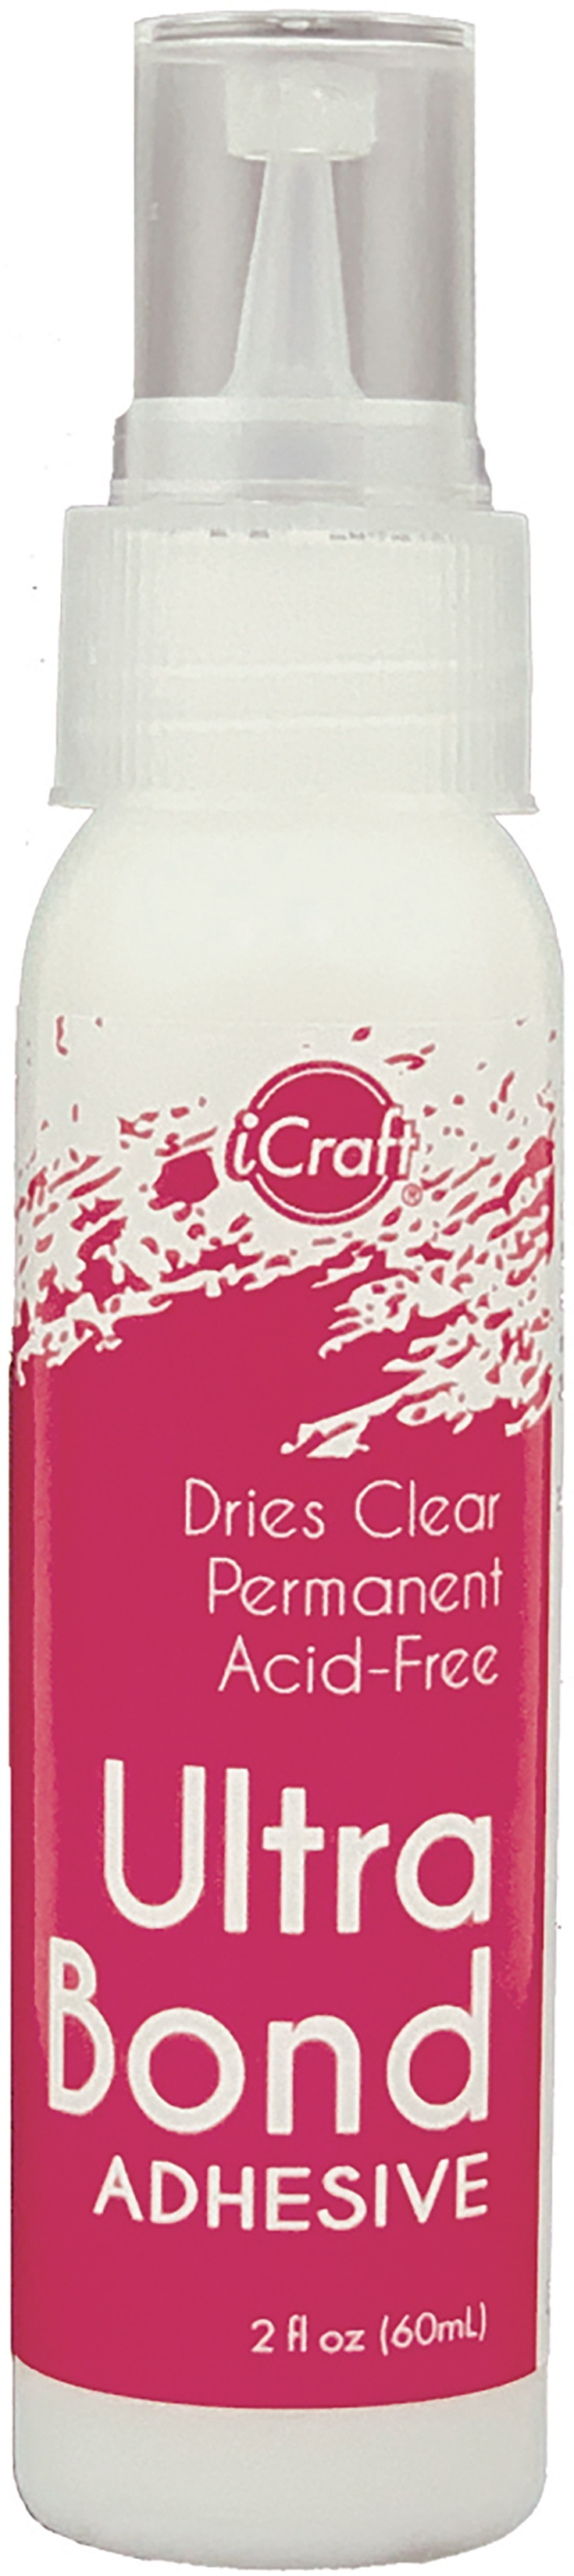 iCraft - Ultra Bond Adhesive, 60ml